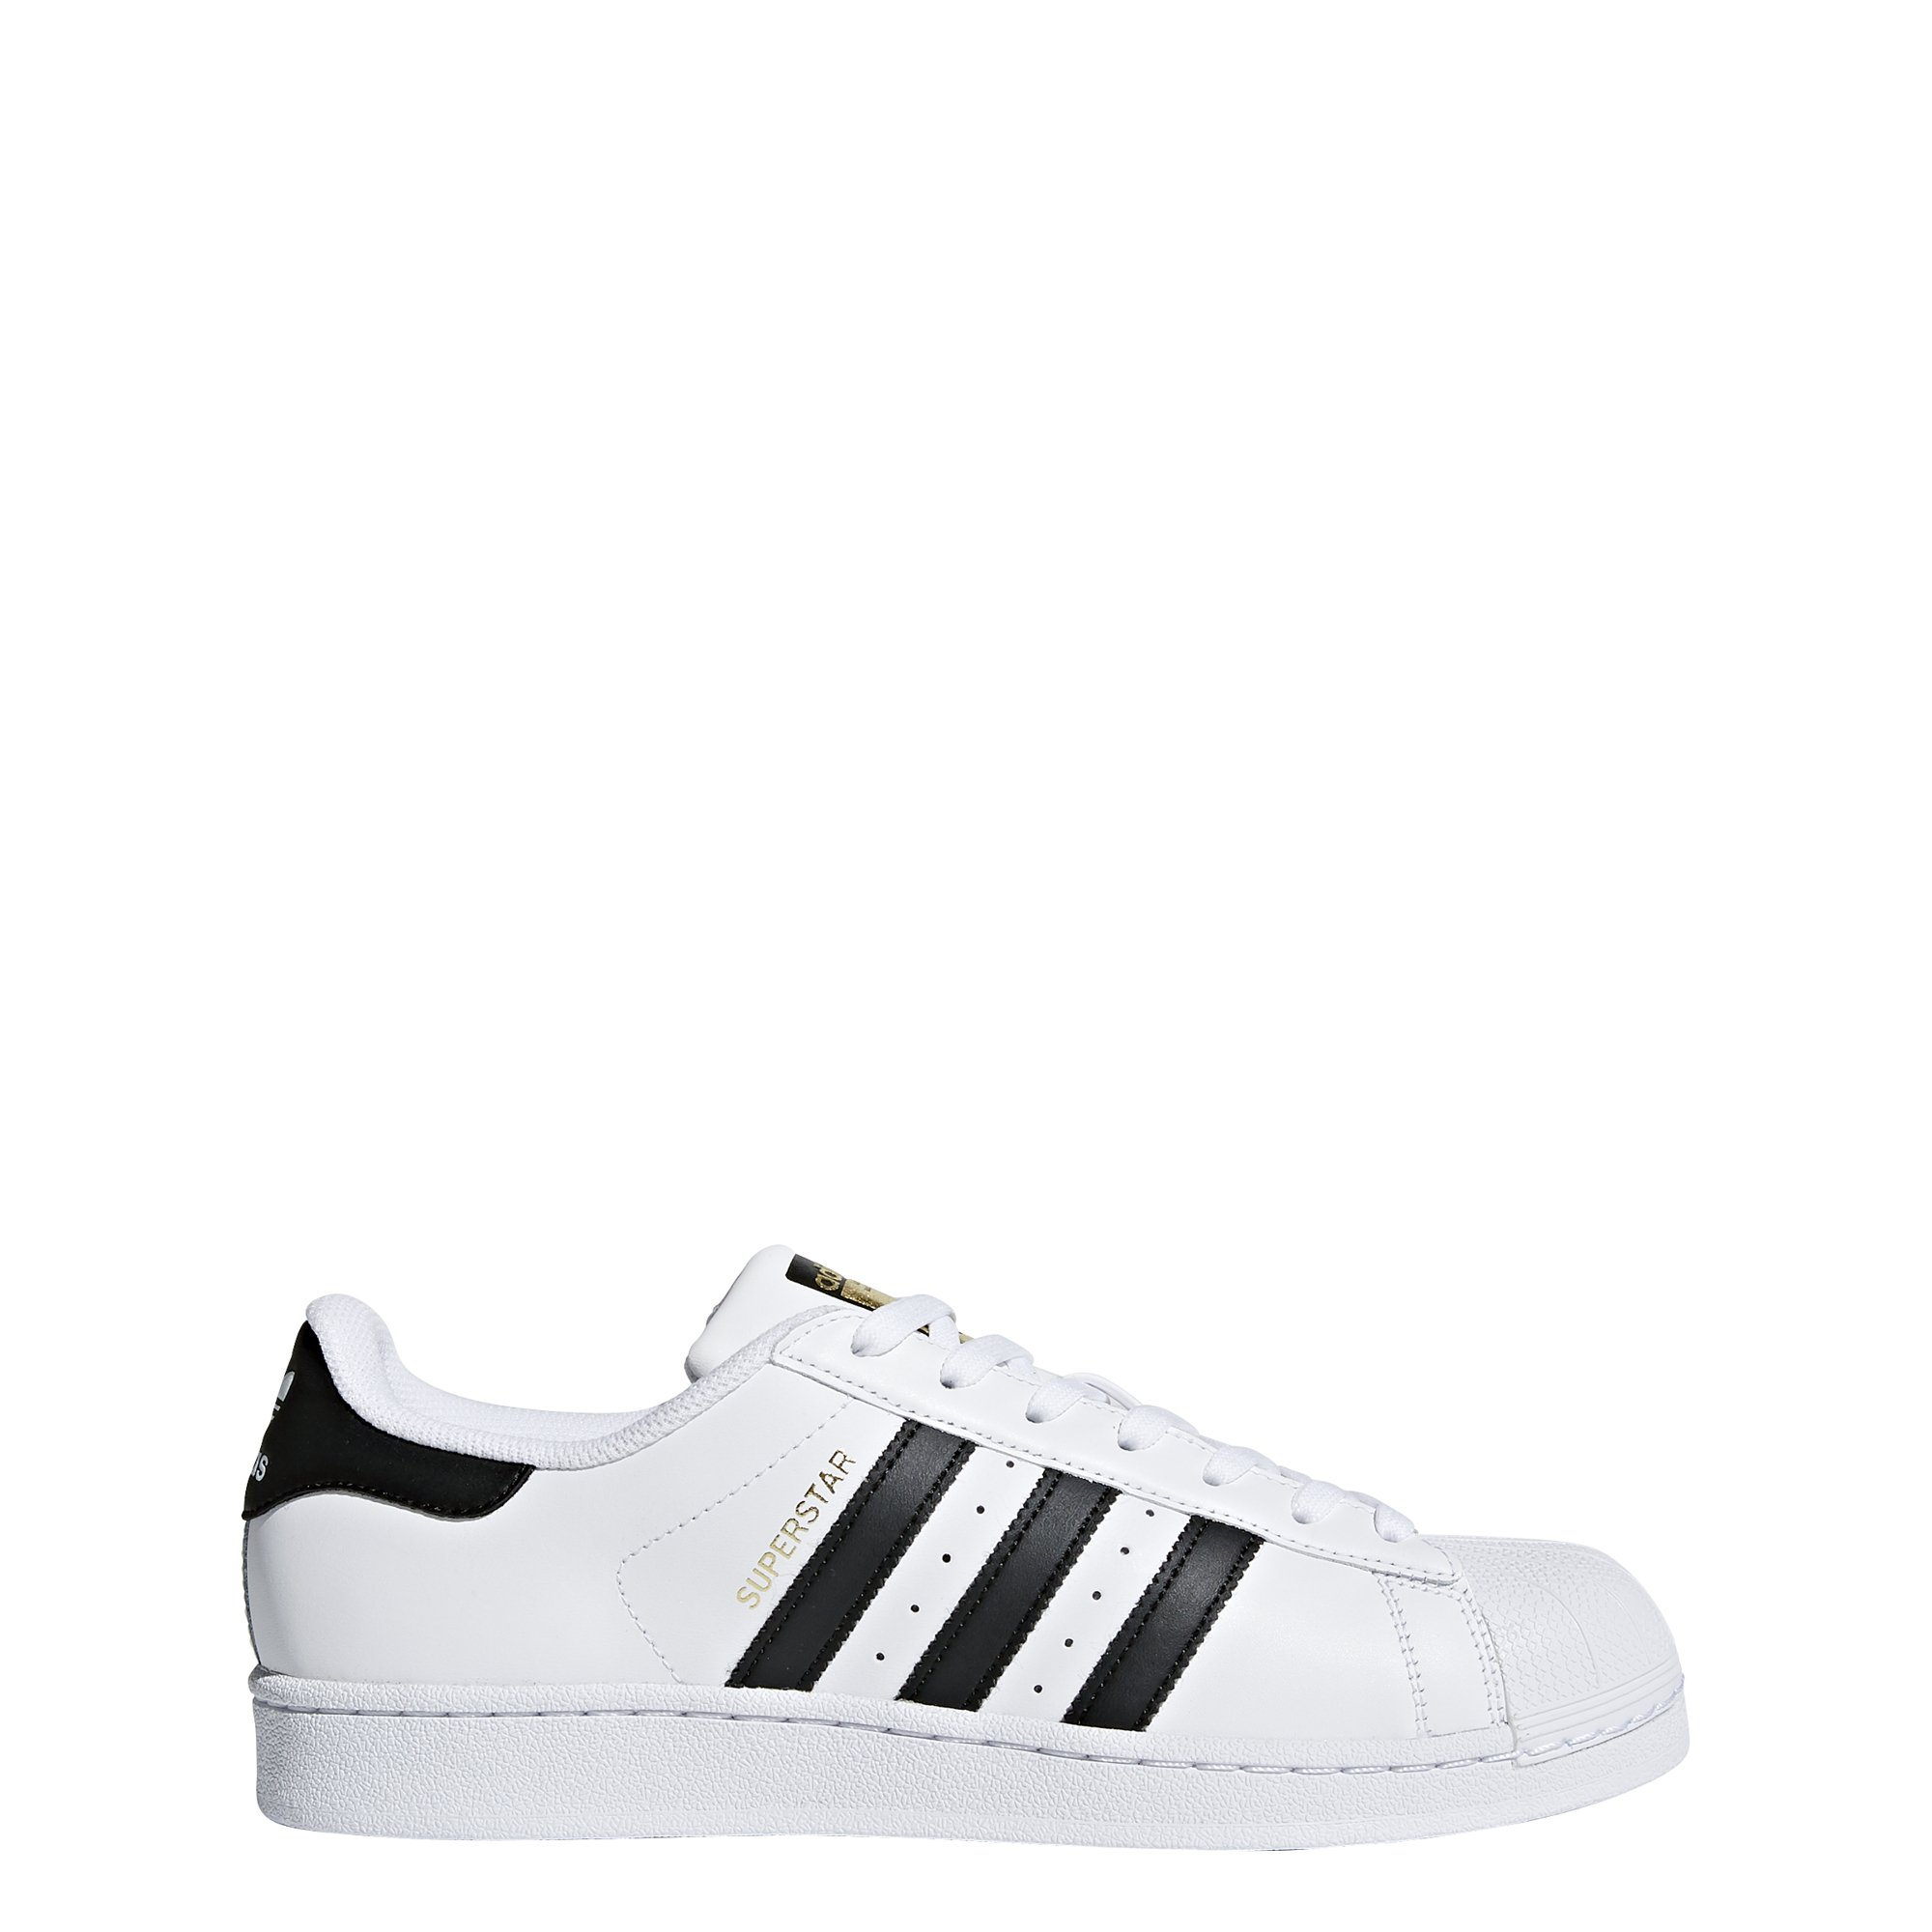 adidas Originals Men's Superstar Shoes White/Core Black/White 9.5 D(M) US by adidas Originals